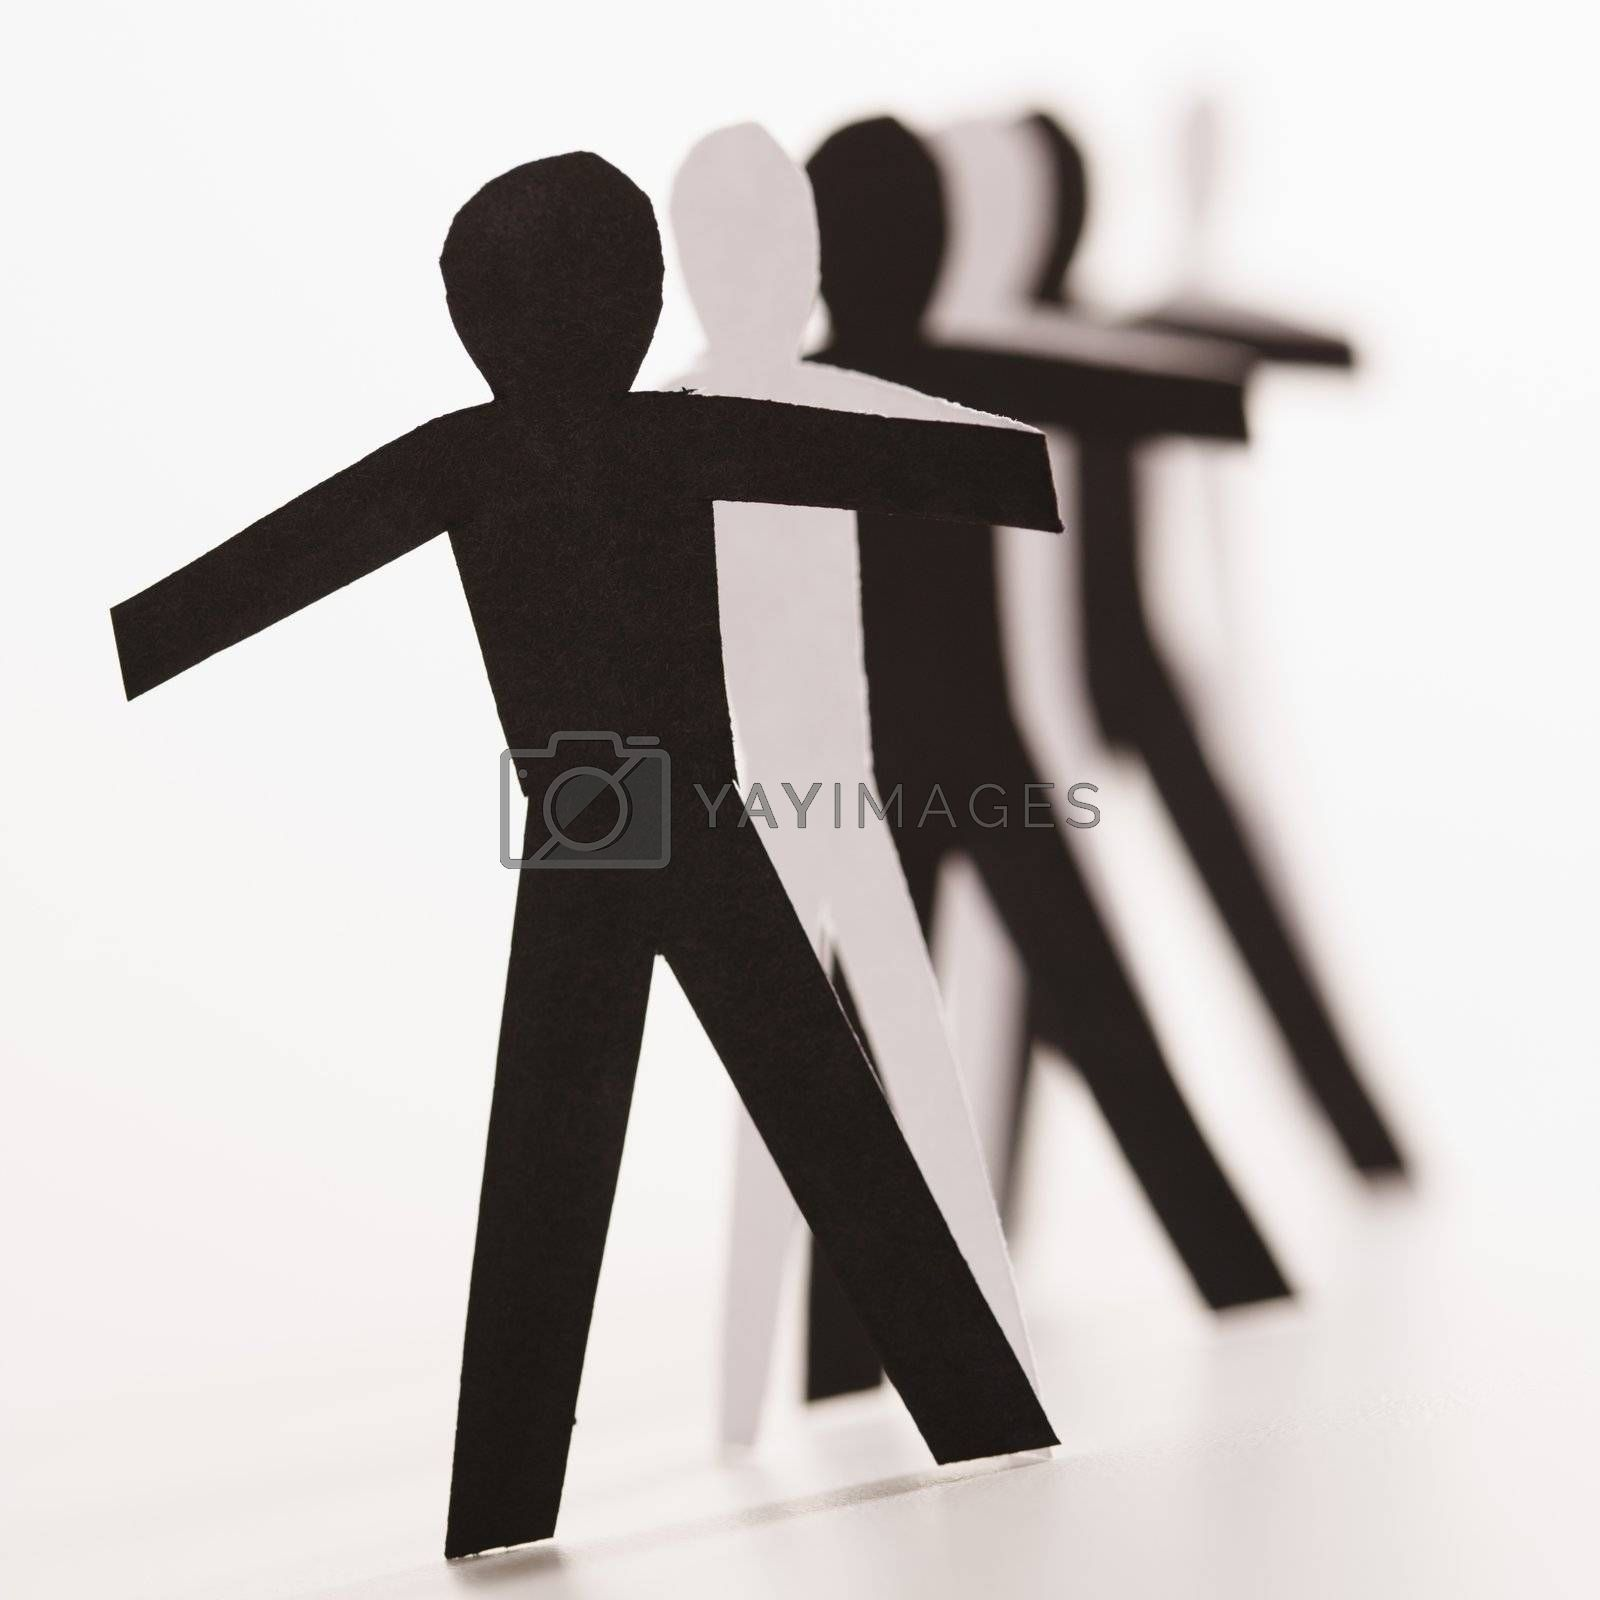 Black and white cutout paper people standing in line together.